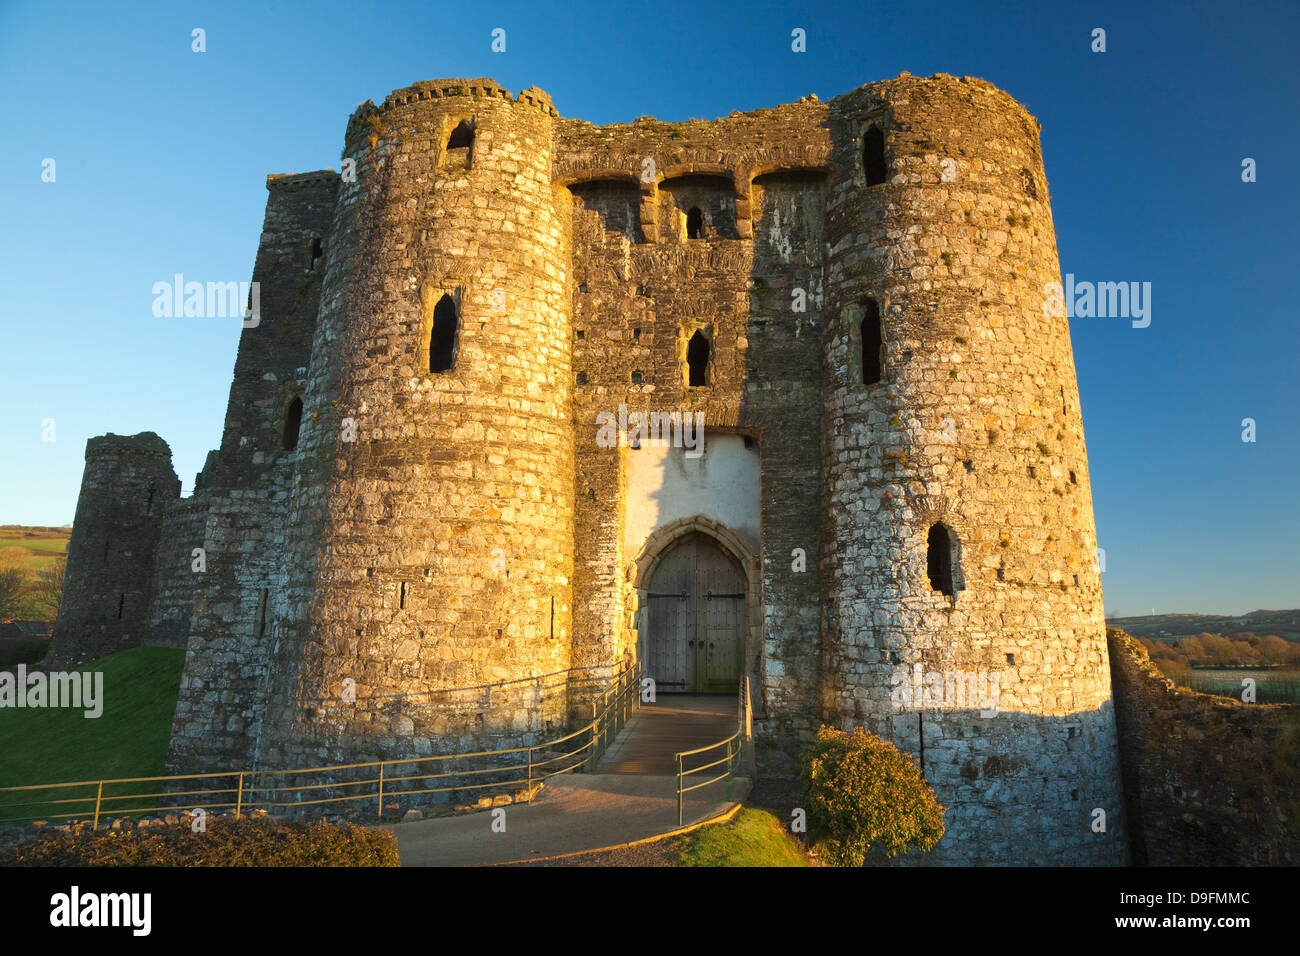 Kidwelly Castle, Carmarthenshire, Wales, UK - Stock Image